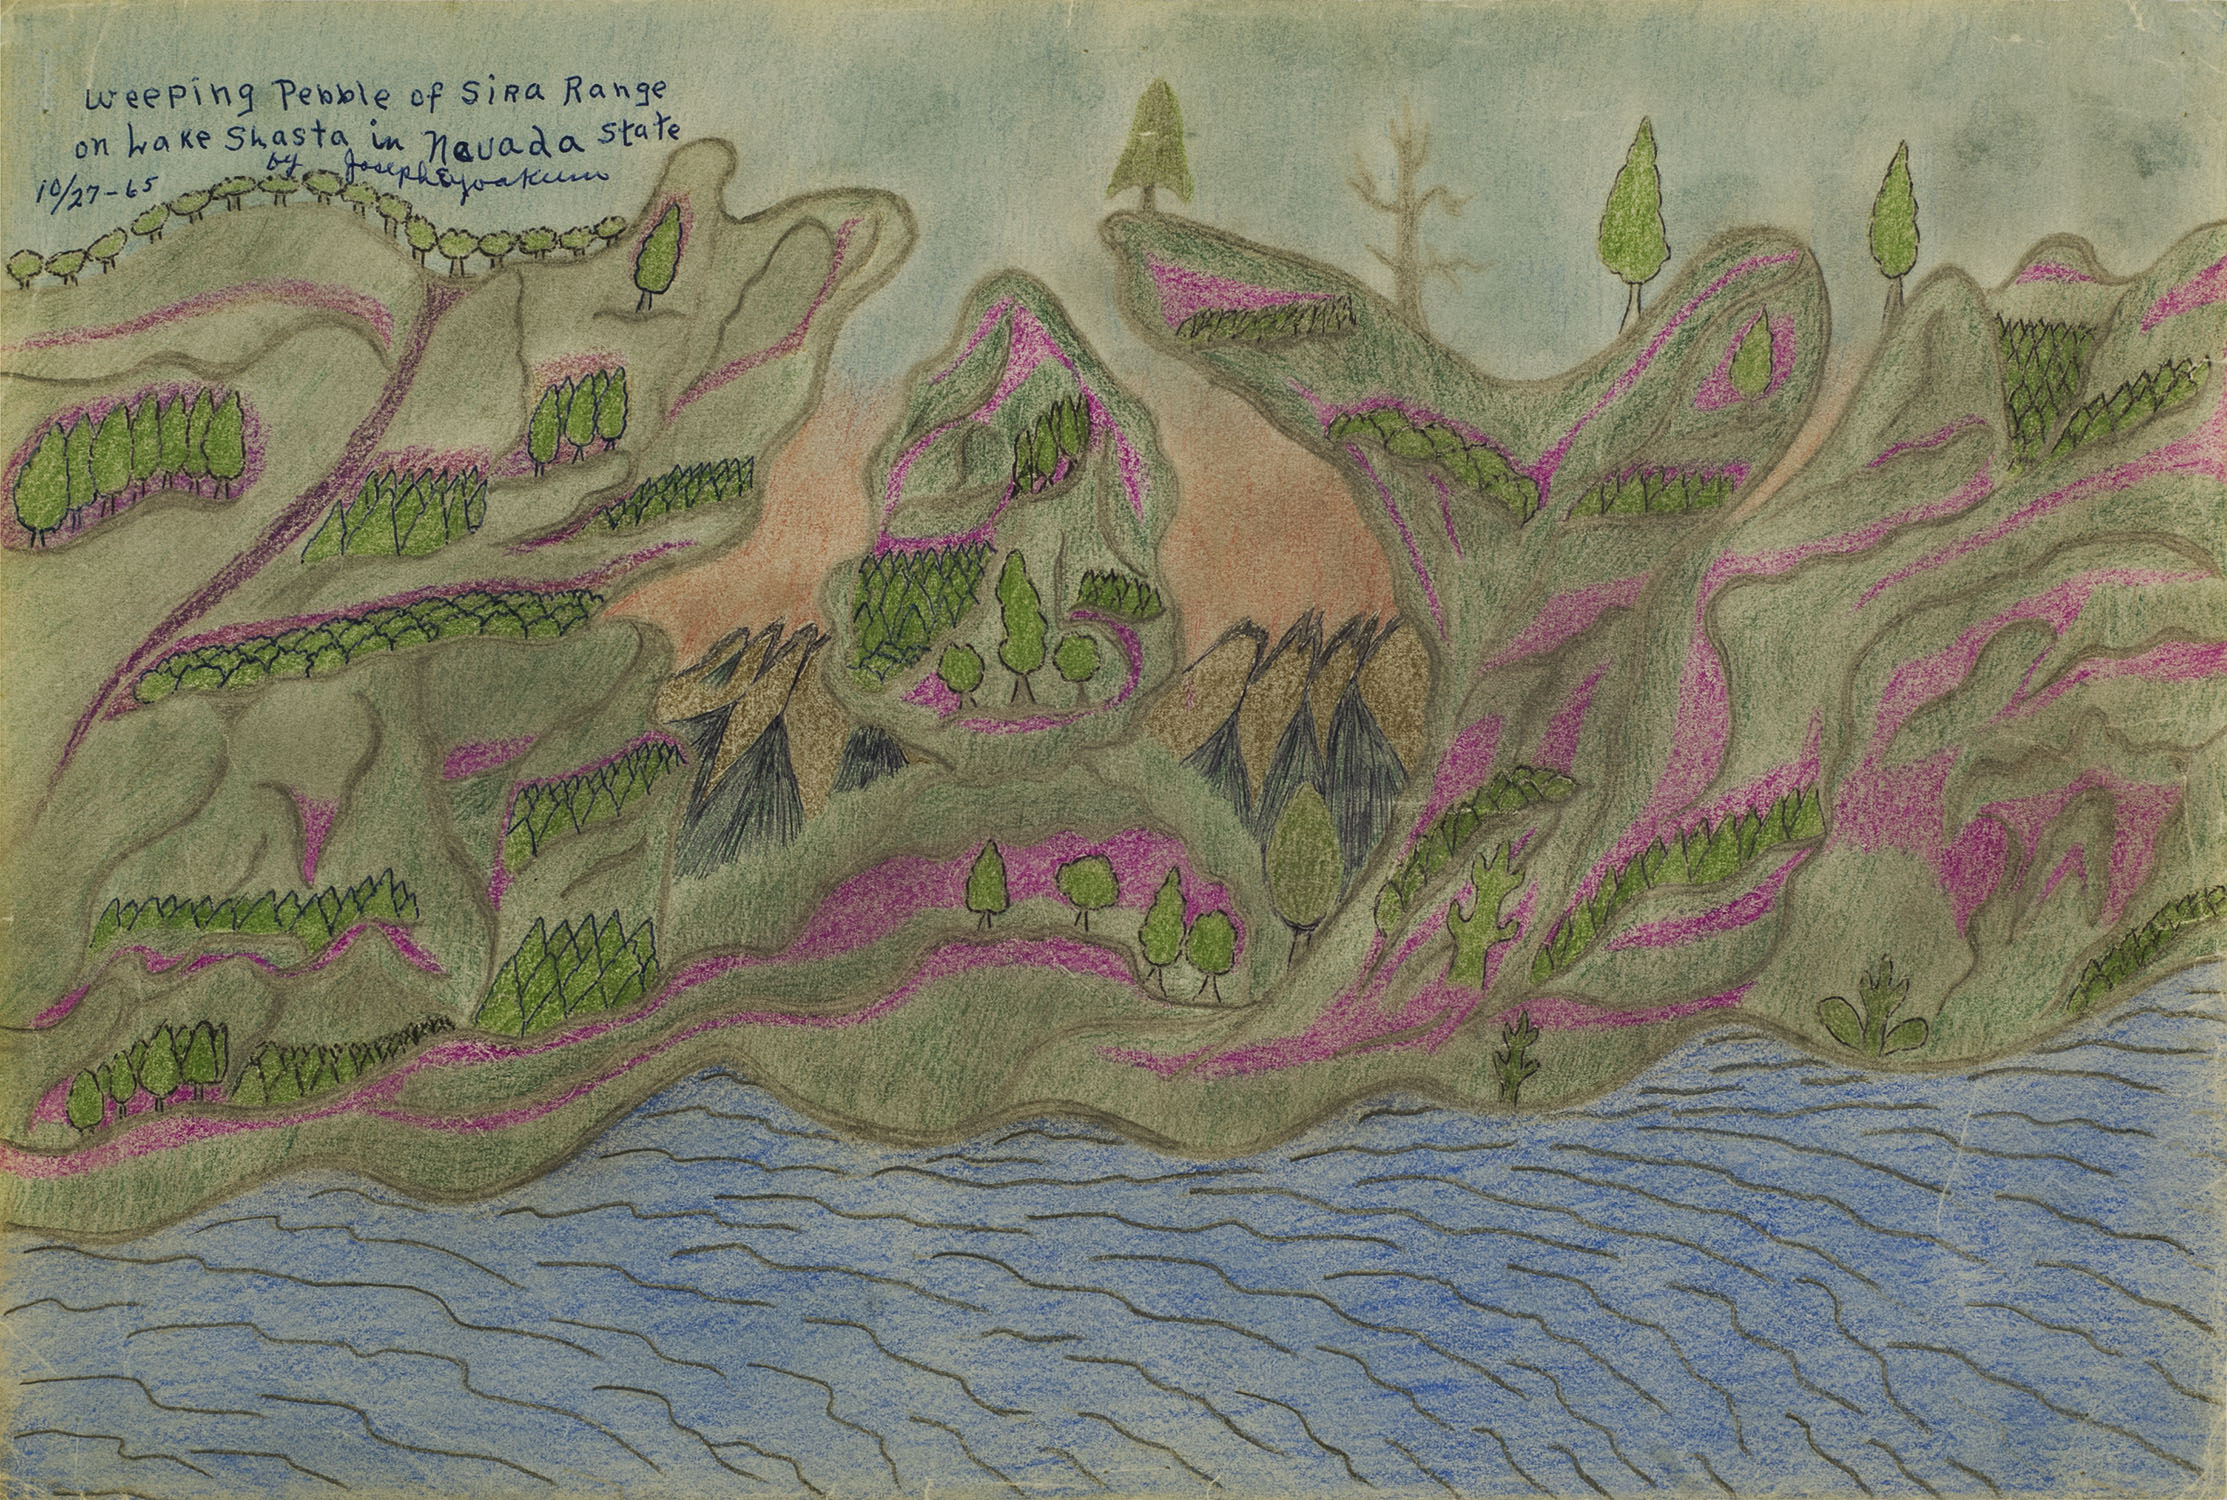 Joseph Yoakum,   Weeping Pebble of Sira Range on Wake Shasta in Nevada State  , 10/27/1965,Colored Pencil, graphite, and ink on paper,12 x 18 inches,30.5 x 45.7 cm,JY 42